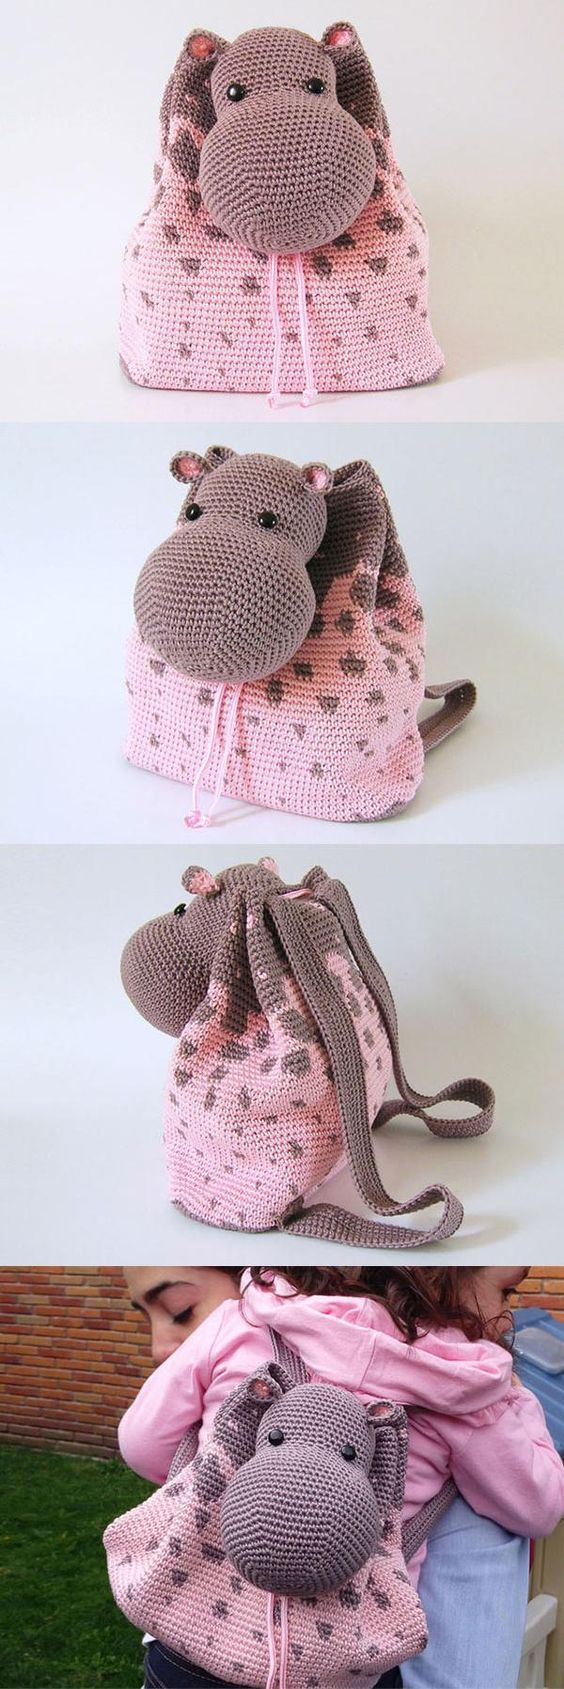 Hippo Backpack Crochet Pattern: More